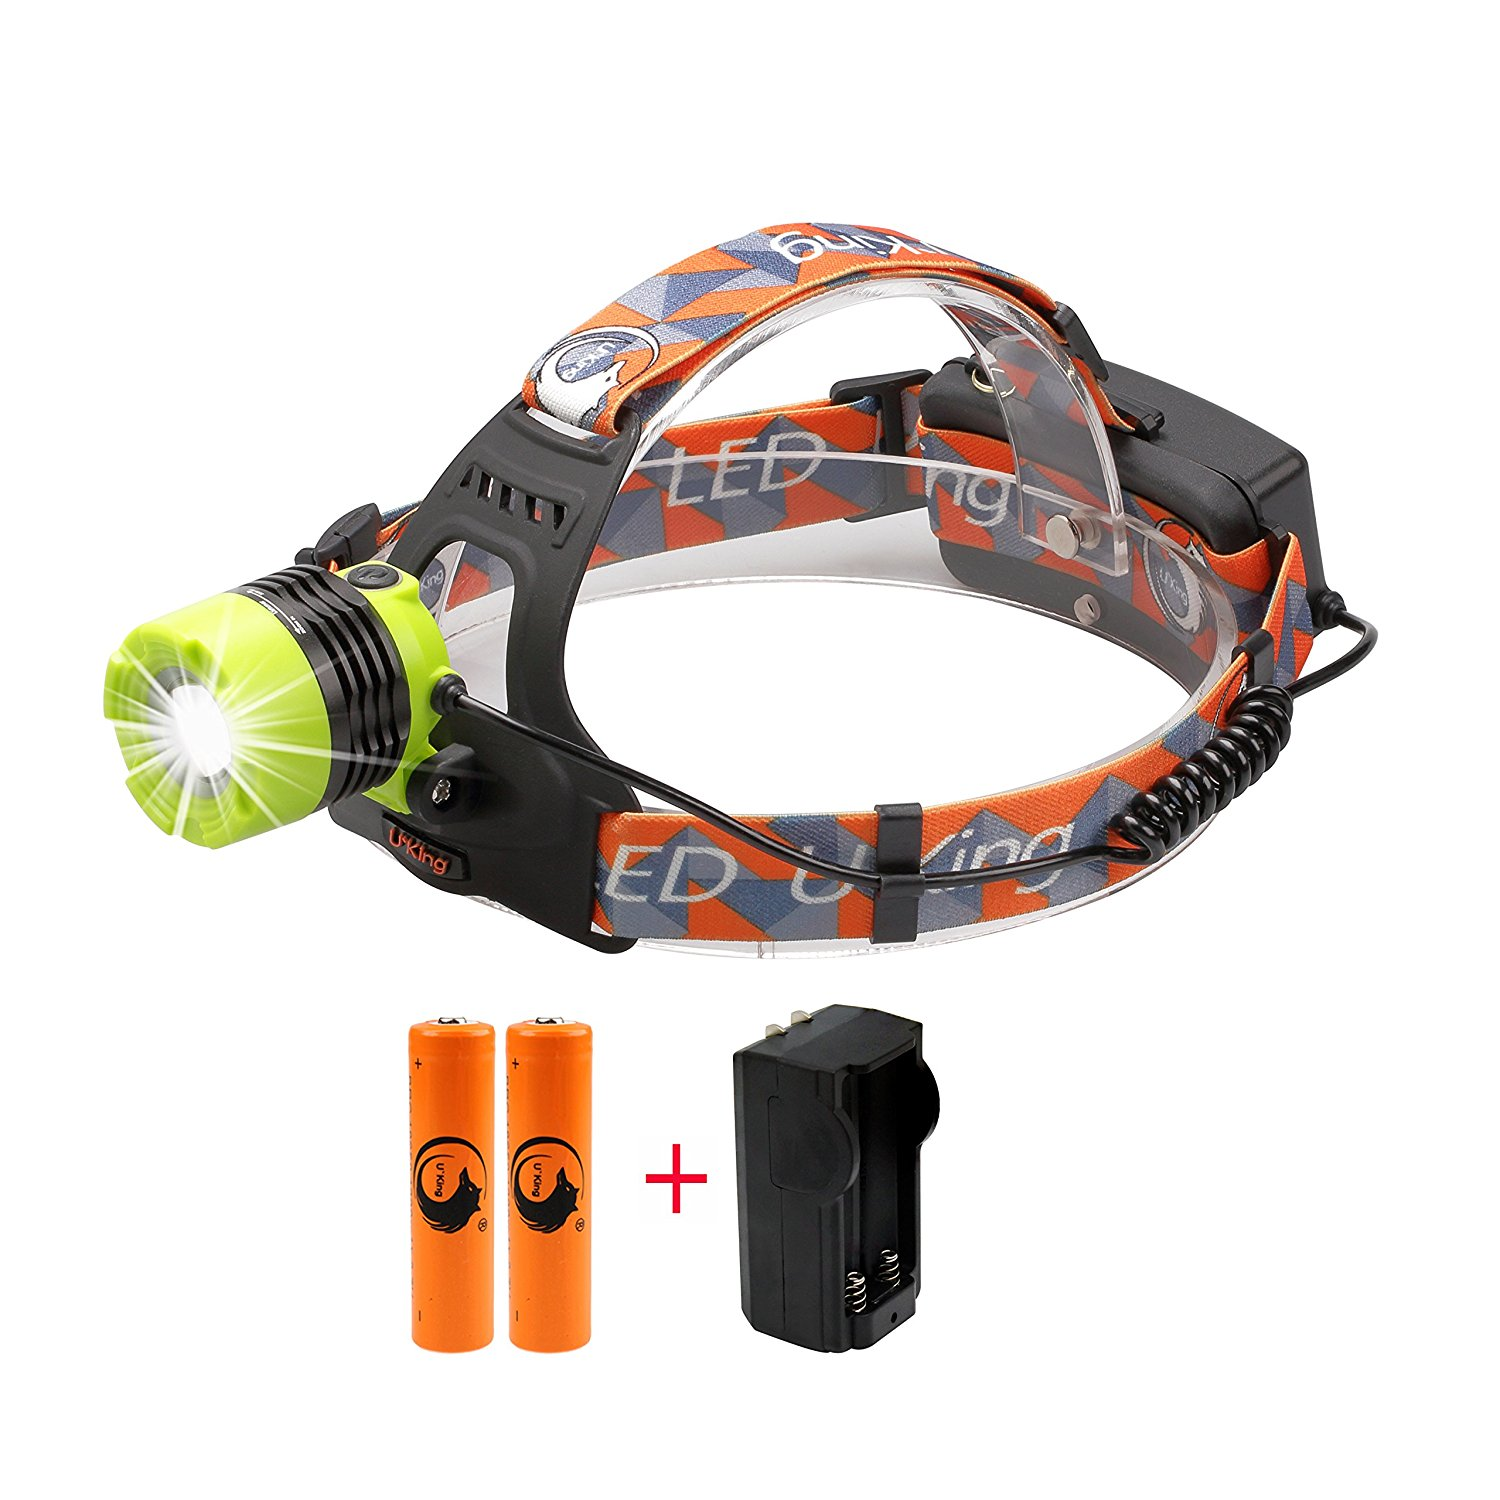 ❗Best LED Headlamp 5000 Lumen flashlight - IMPROVED LED, Rechargeable 18650 headlight flashlights, Waterproof Hard Hat Light, Bright Head Lights, Running or Camping headlamps